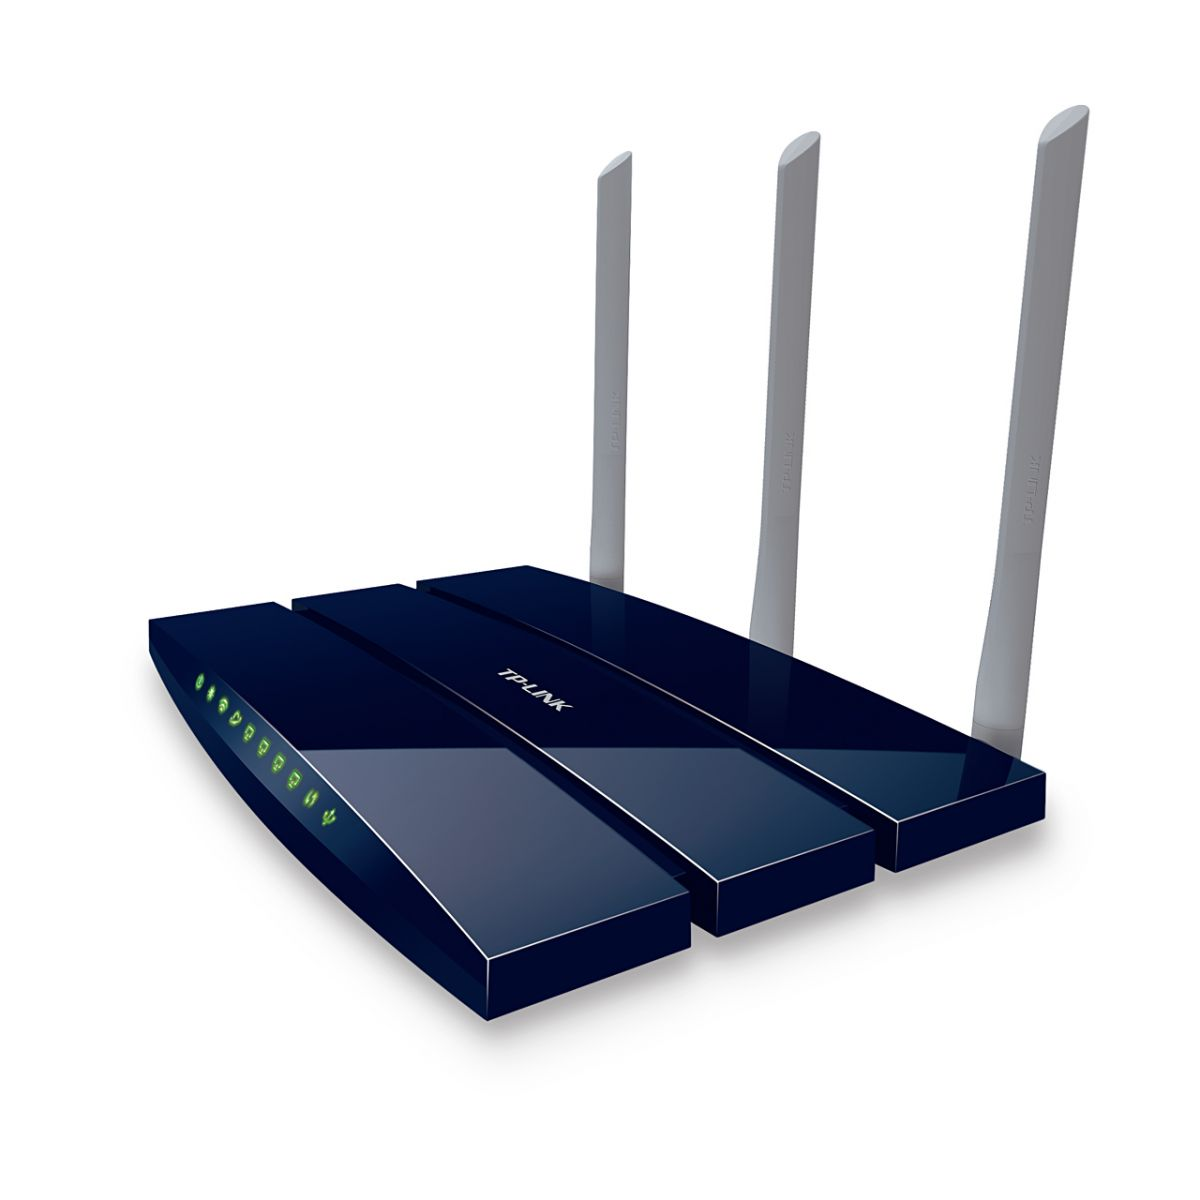 Roteador Wireless N Gigabit Ultimate 300mbps Tl-wr1043nd  - ShopNoroeste.com.br